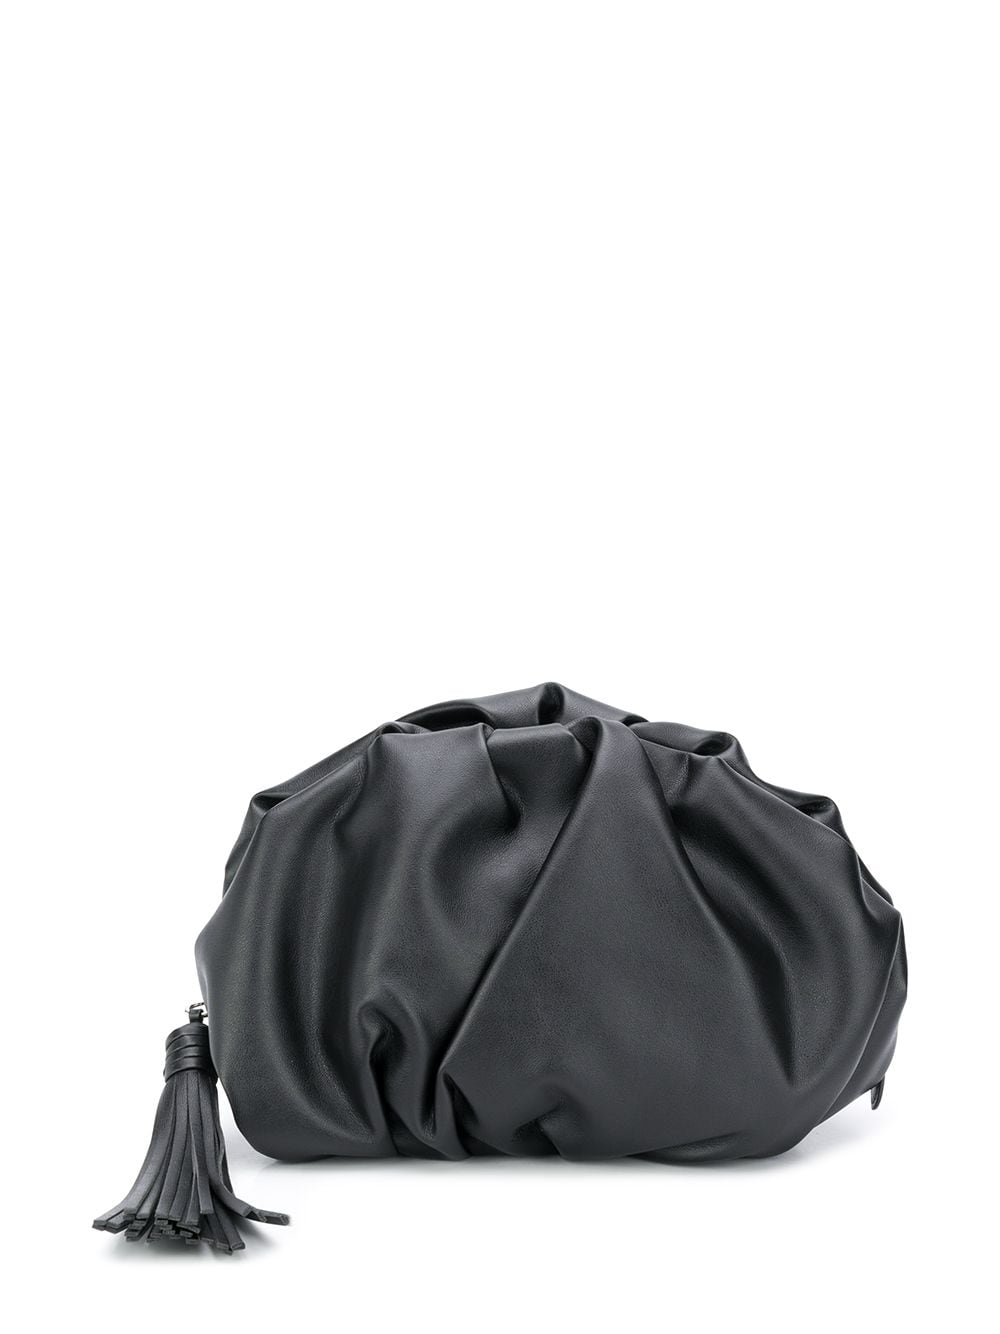 Ruched Leather Clutch